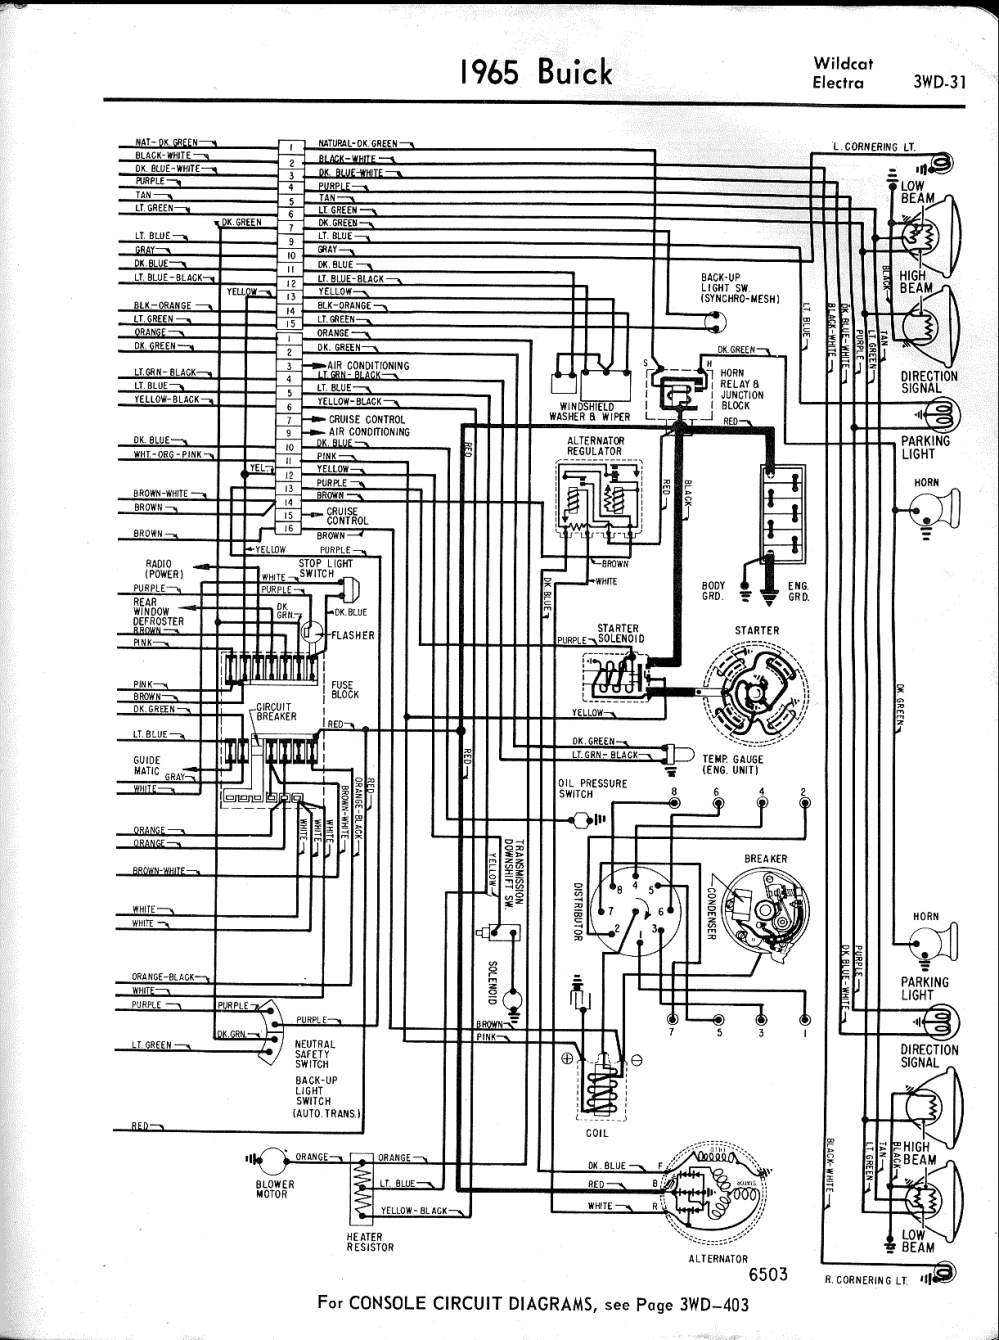 medium resolution of buick wiring diagrams 1957 1965 wildcat arctic cat wiring diagrams wildcat wiring diagram